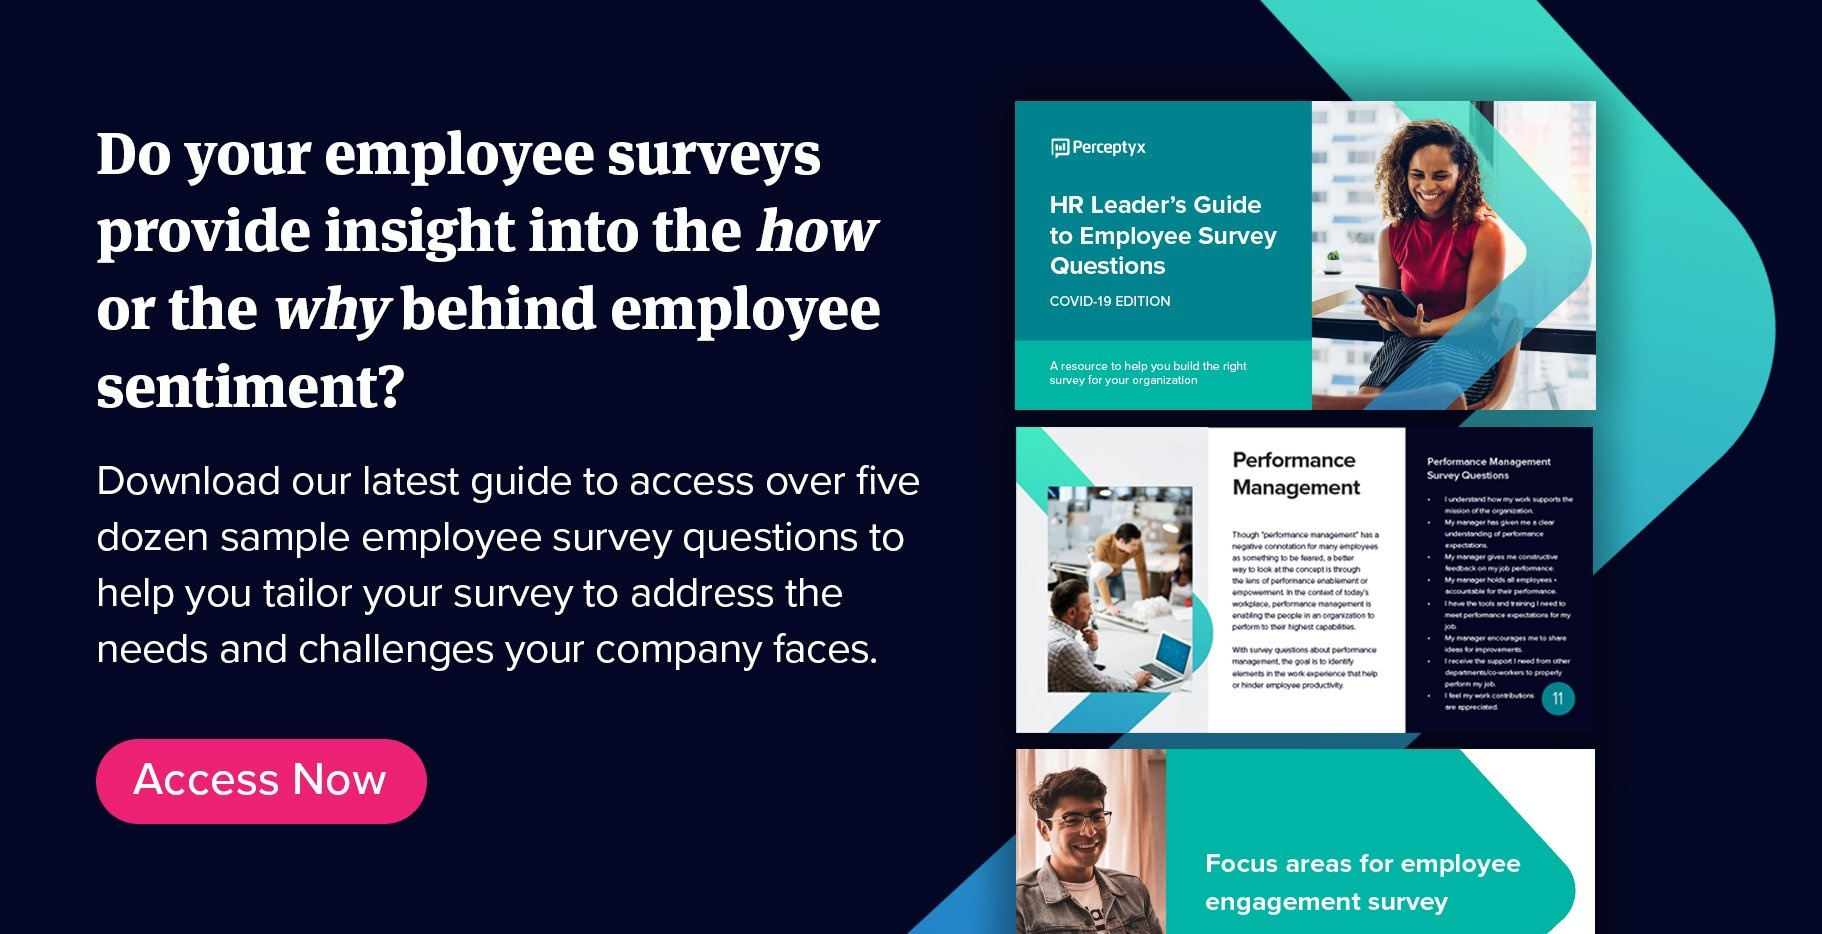 Download the HR Leader's Guide to Employee Survey Questions